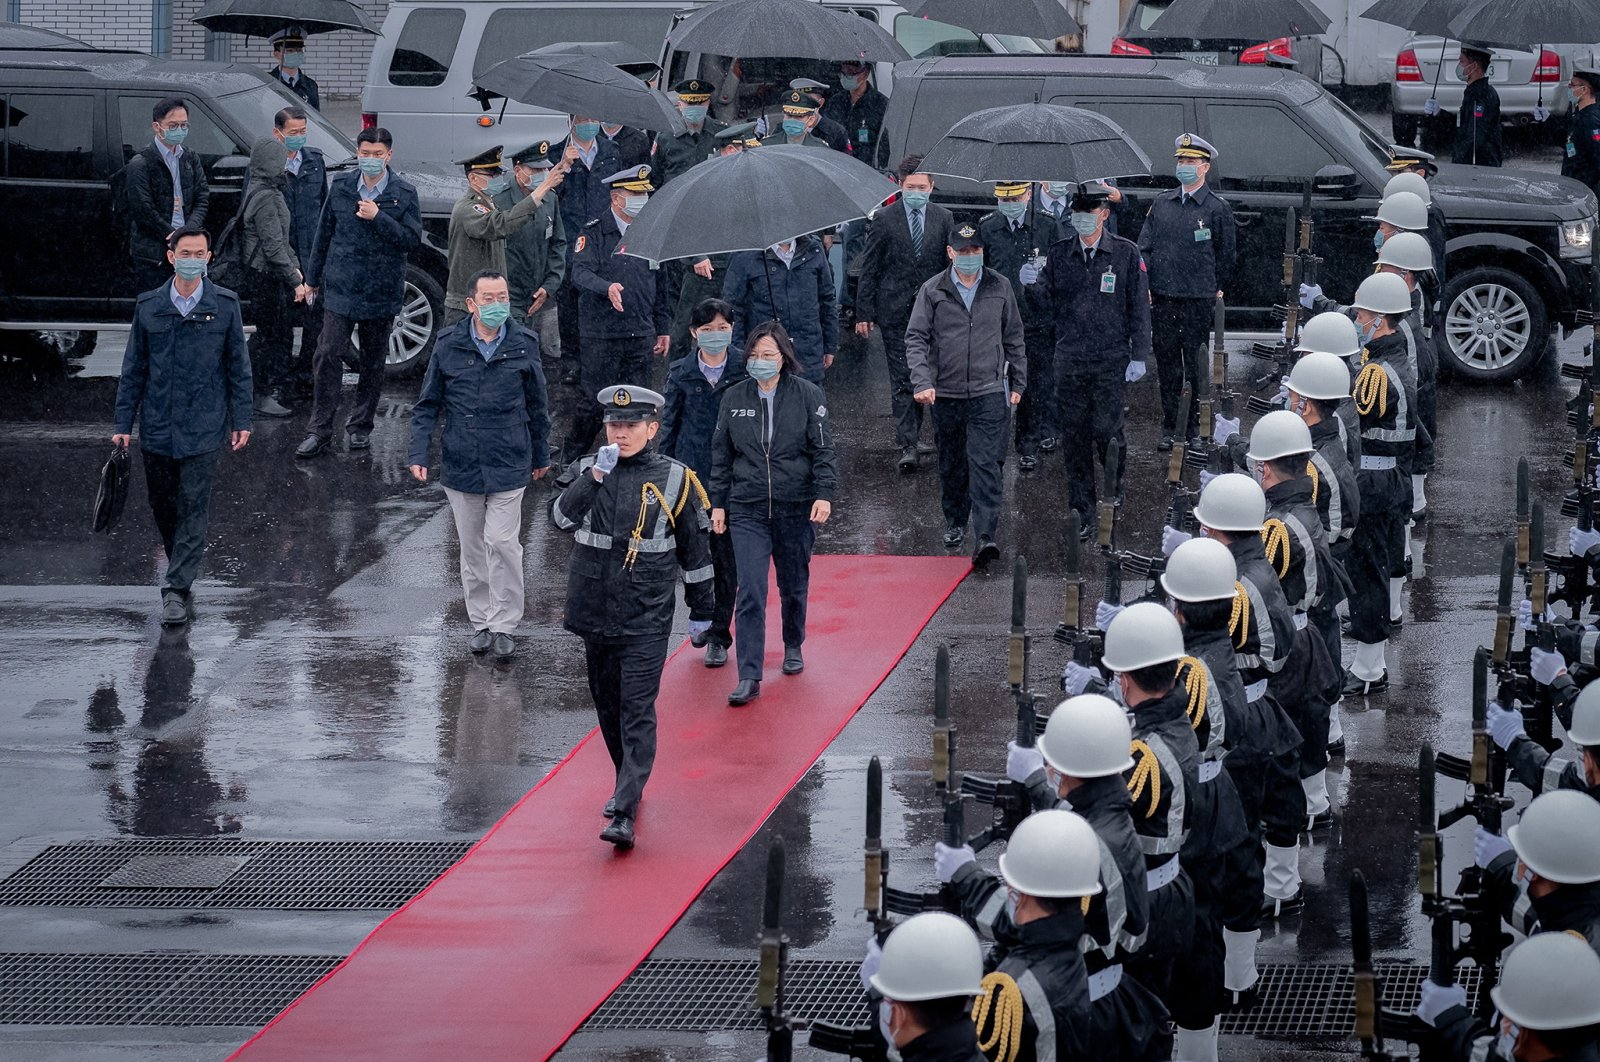 A handout photo made available by the Taiwan Presidential office shows President Tsai Ing-wen (C) arriving during her visit to a Naval base in Keelung, Taiwan, March 8, 2021. (EPA Photo)